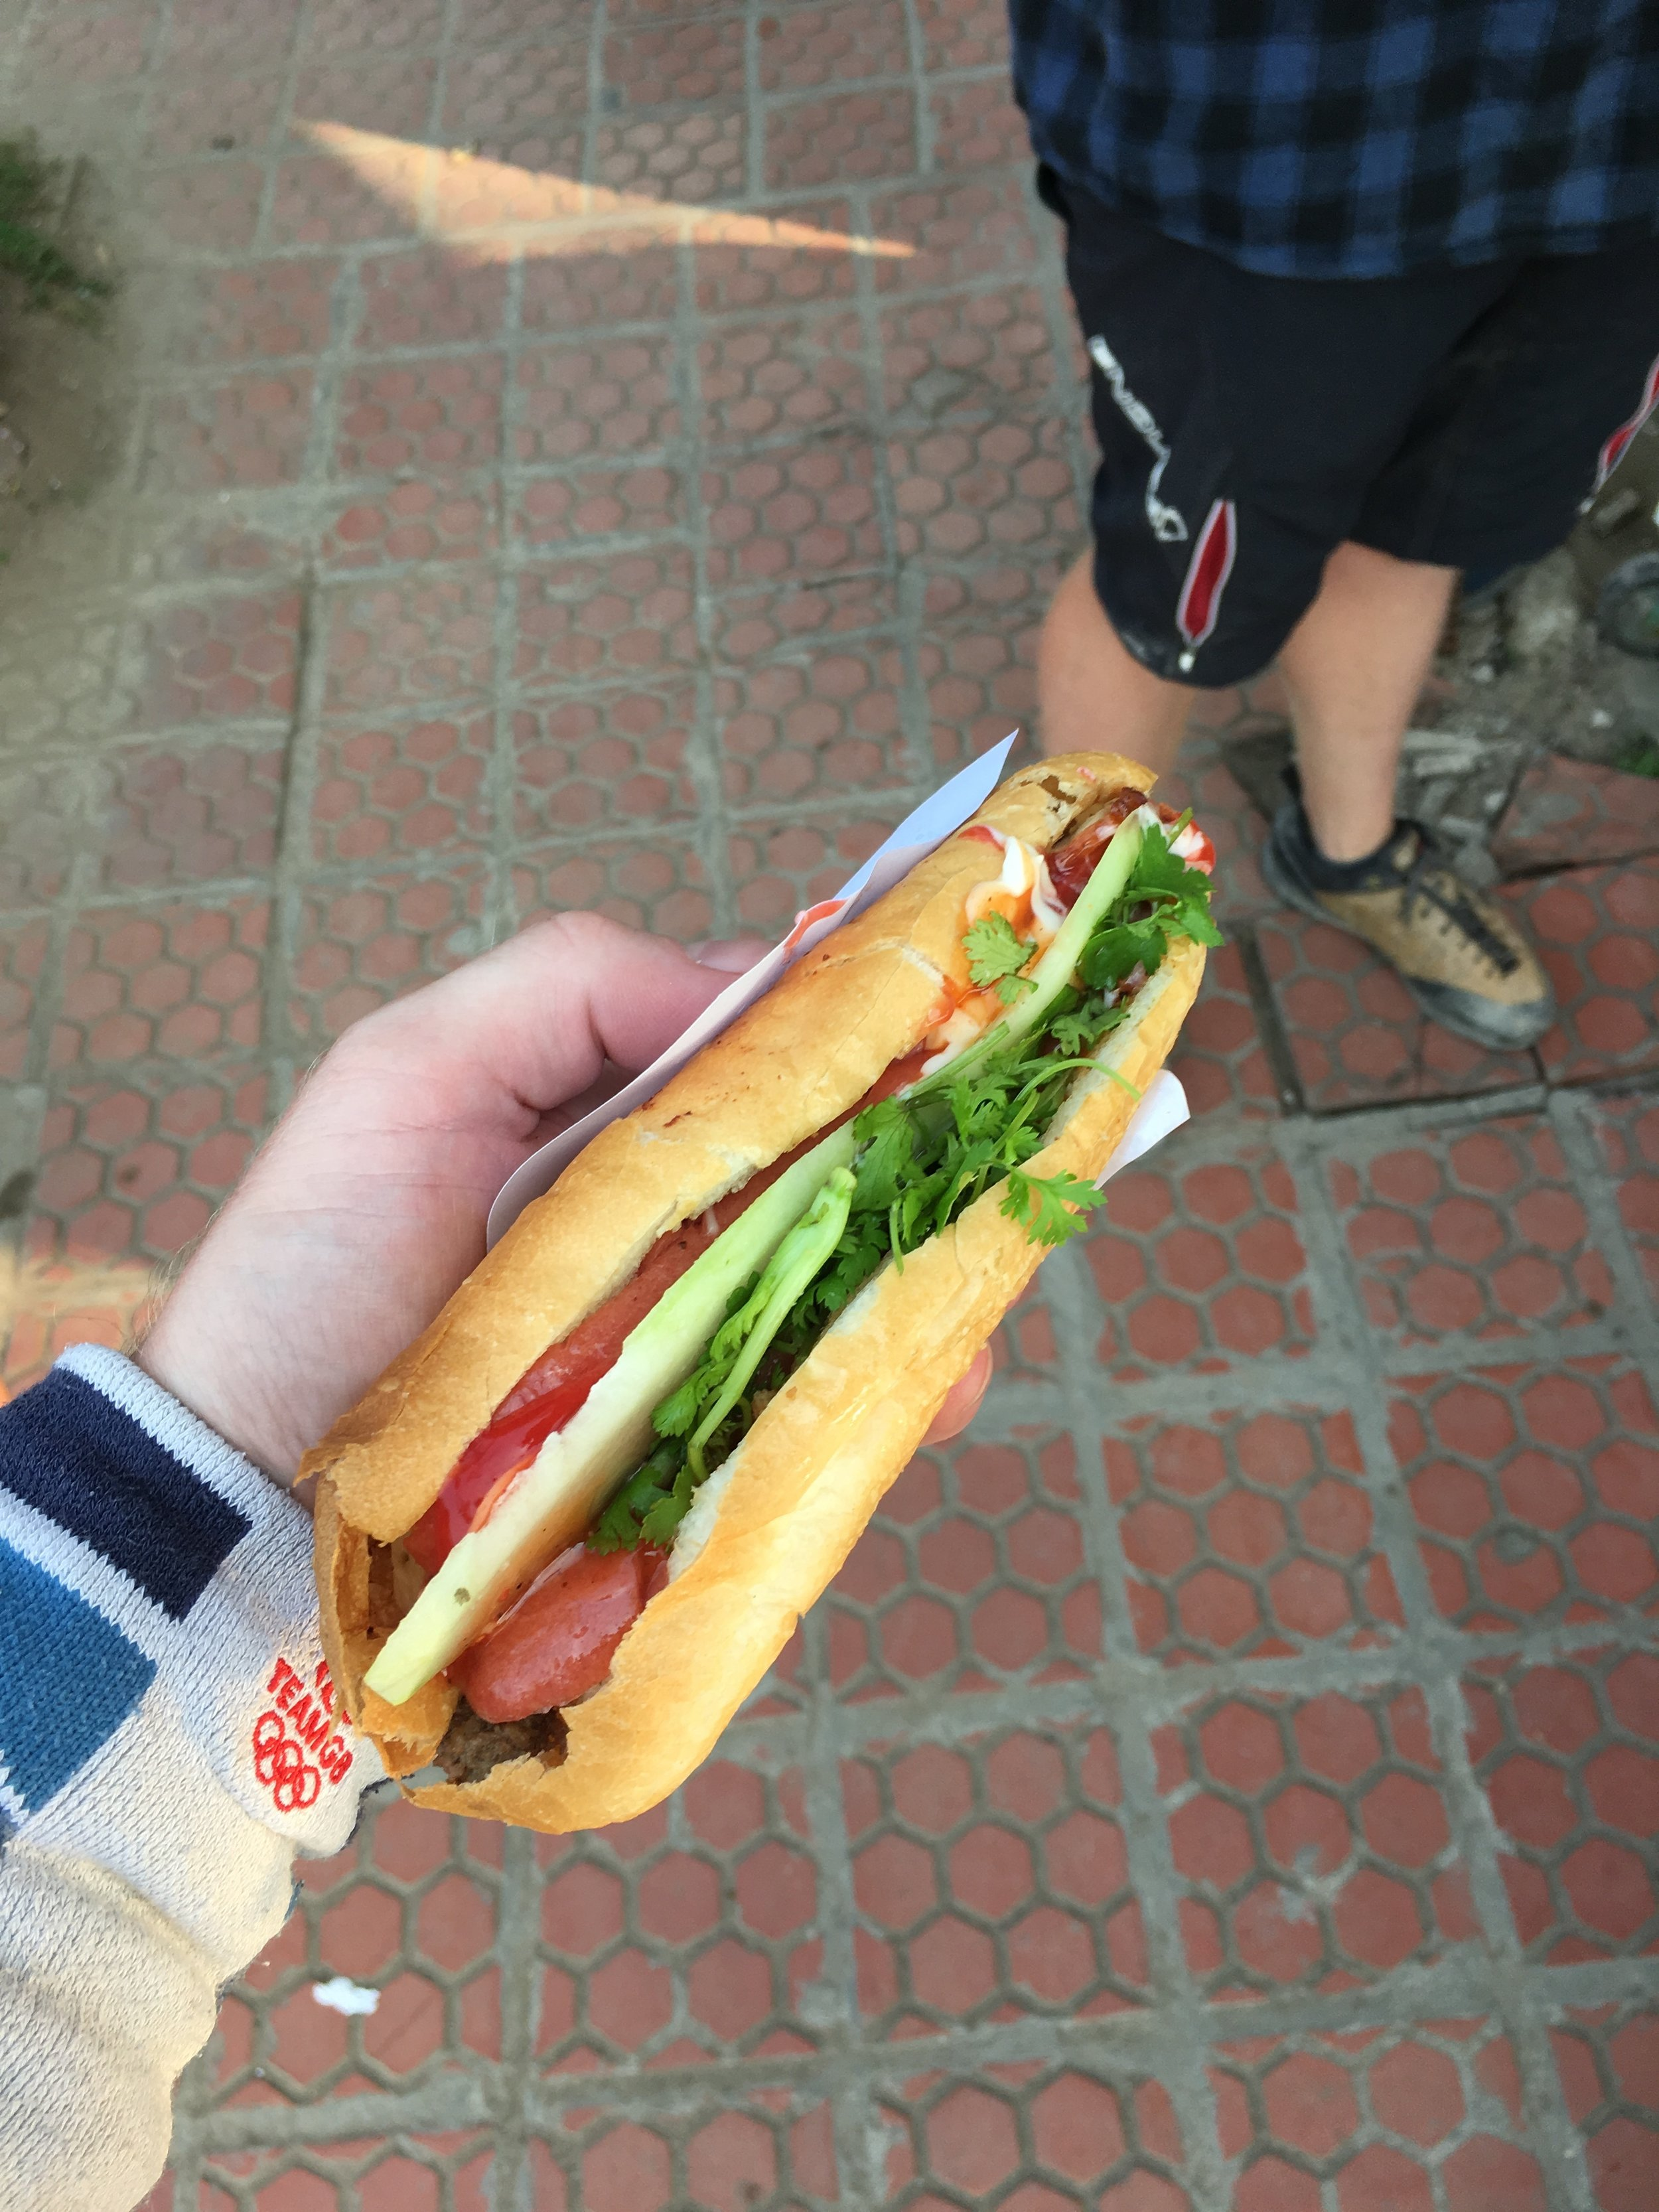 This was the first Banh Mi I had the pleasure of trying and it certainly was a culinary pleasure. My sandwiches will be forever be influenced by these simple,delicious and easy found sandwiches.